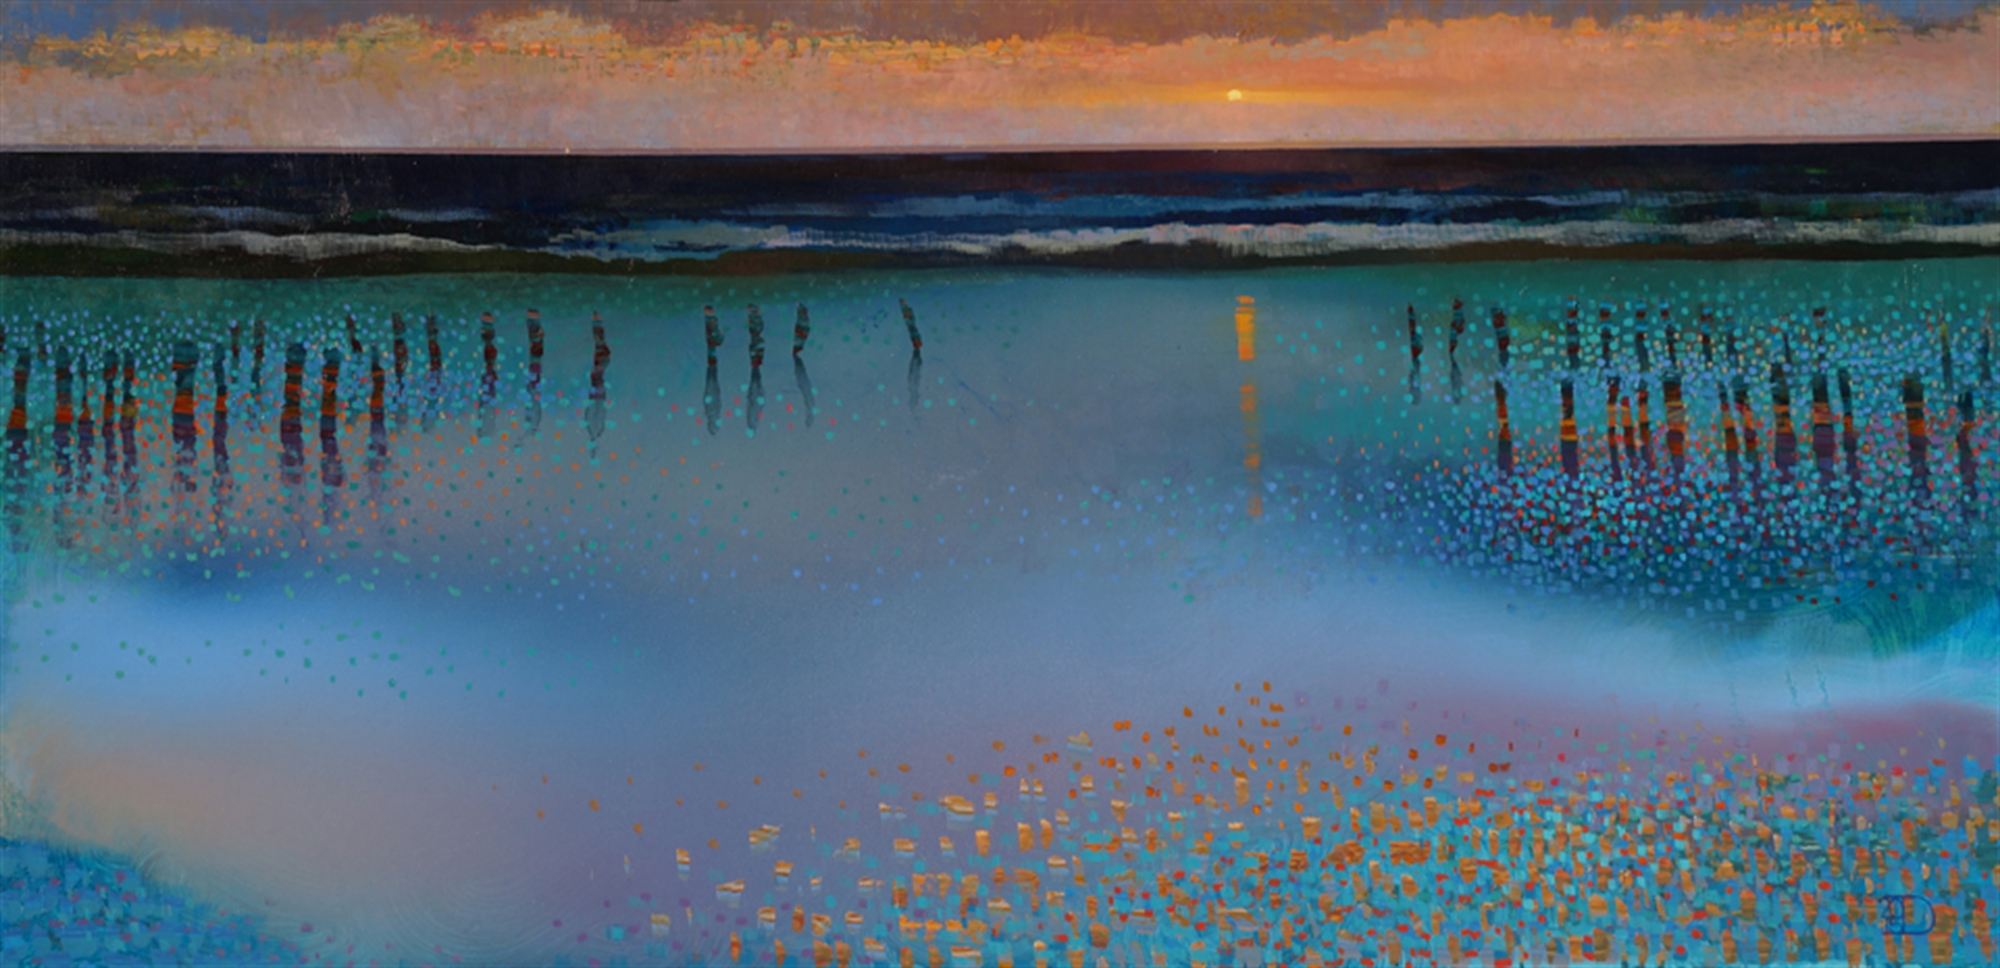 Coming Home by Ton Dubbeldam